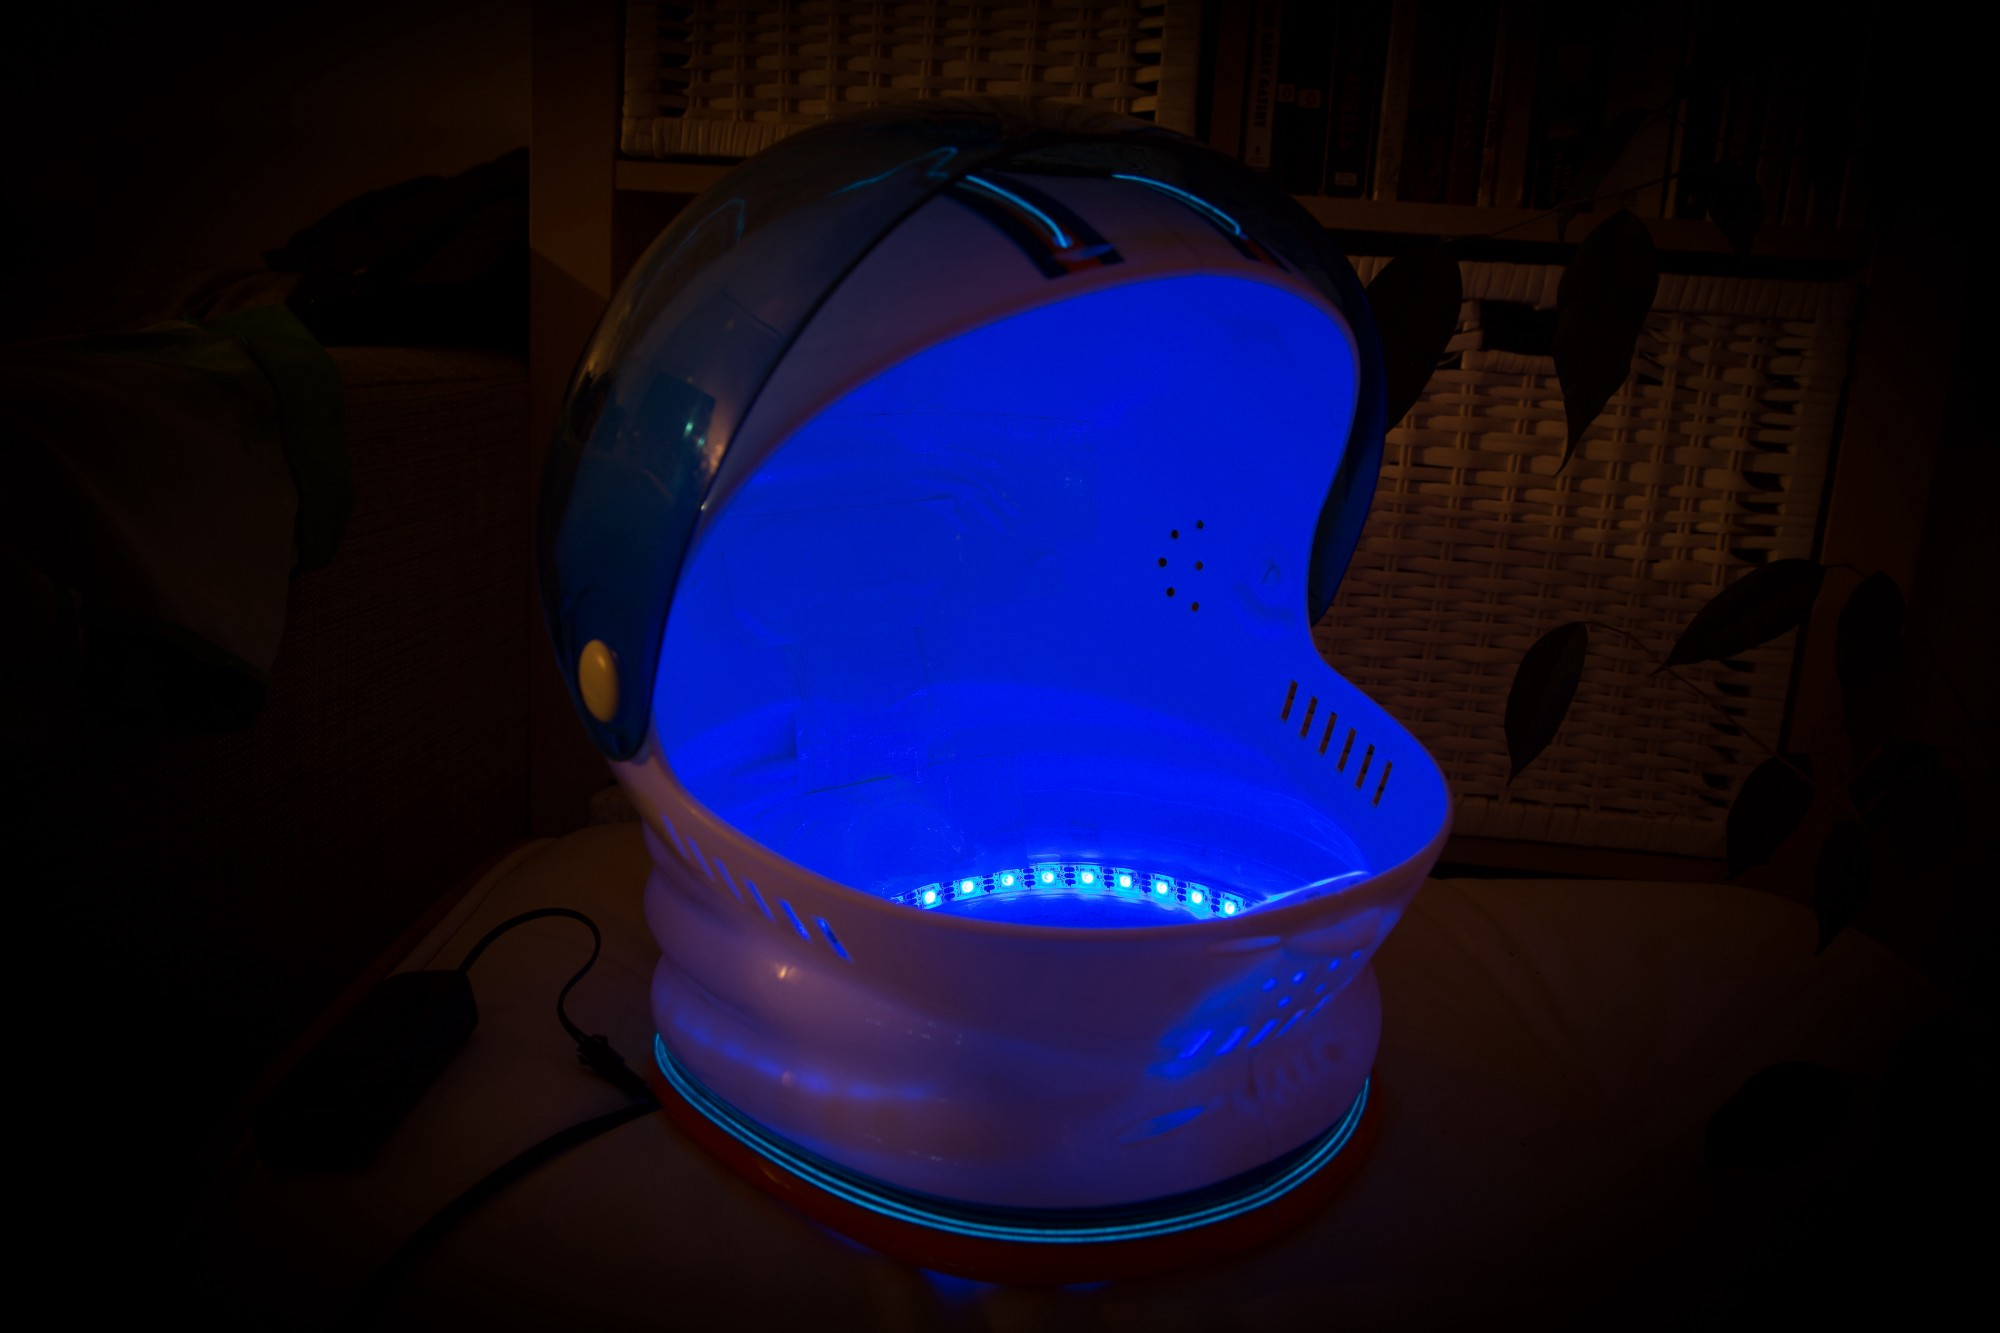 How To Build Your Own Bluetooth Connected Astronaut Halloween Costume Arduino Lights Dimmer For Multiple Lamps An Helmet Like You Find Many Of Them On Amazon With Added El Wire Led Strip And Connectivity Using